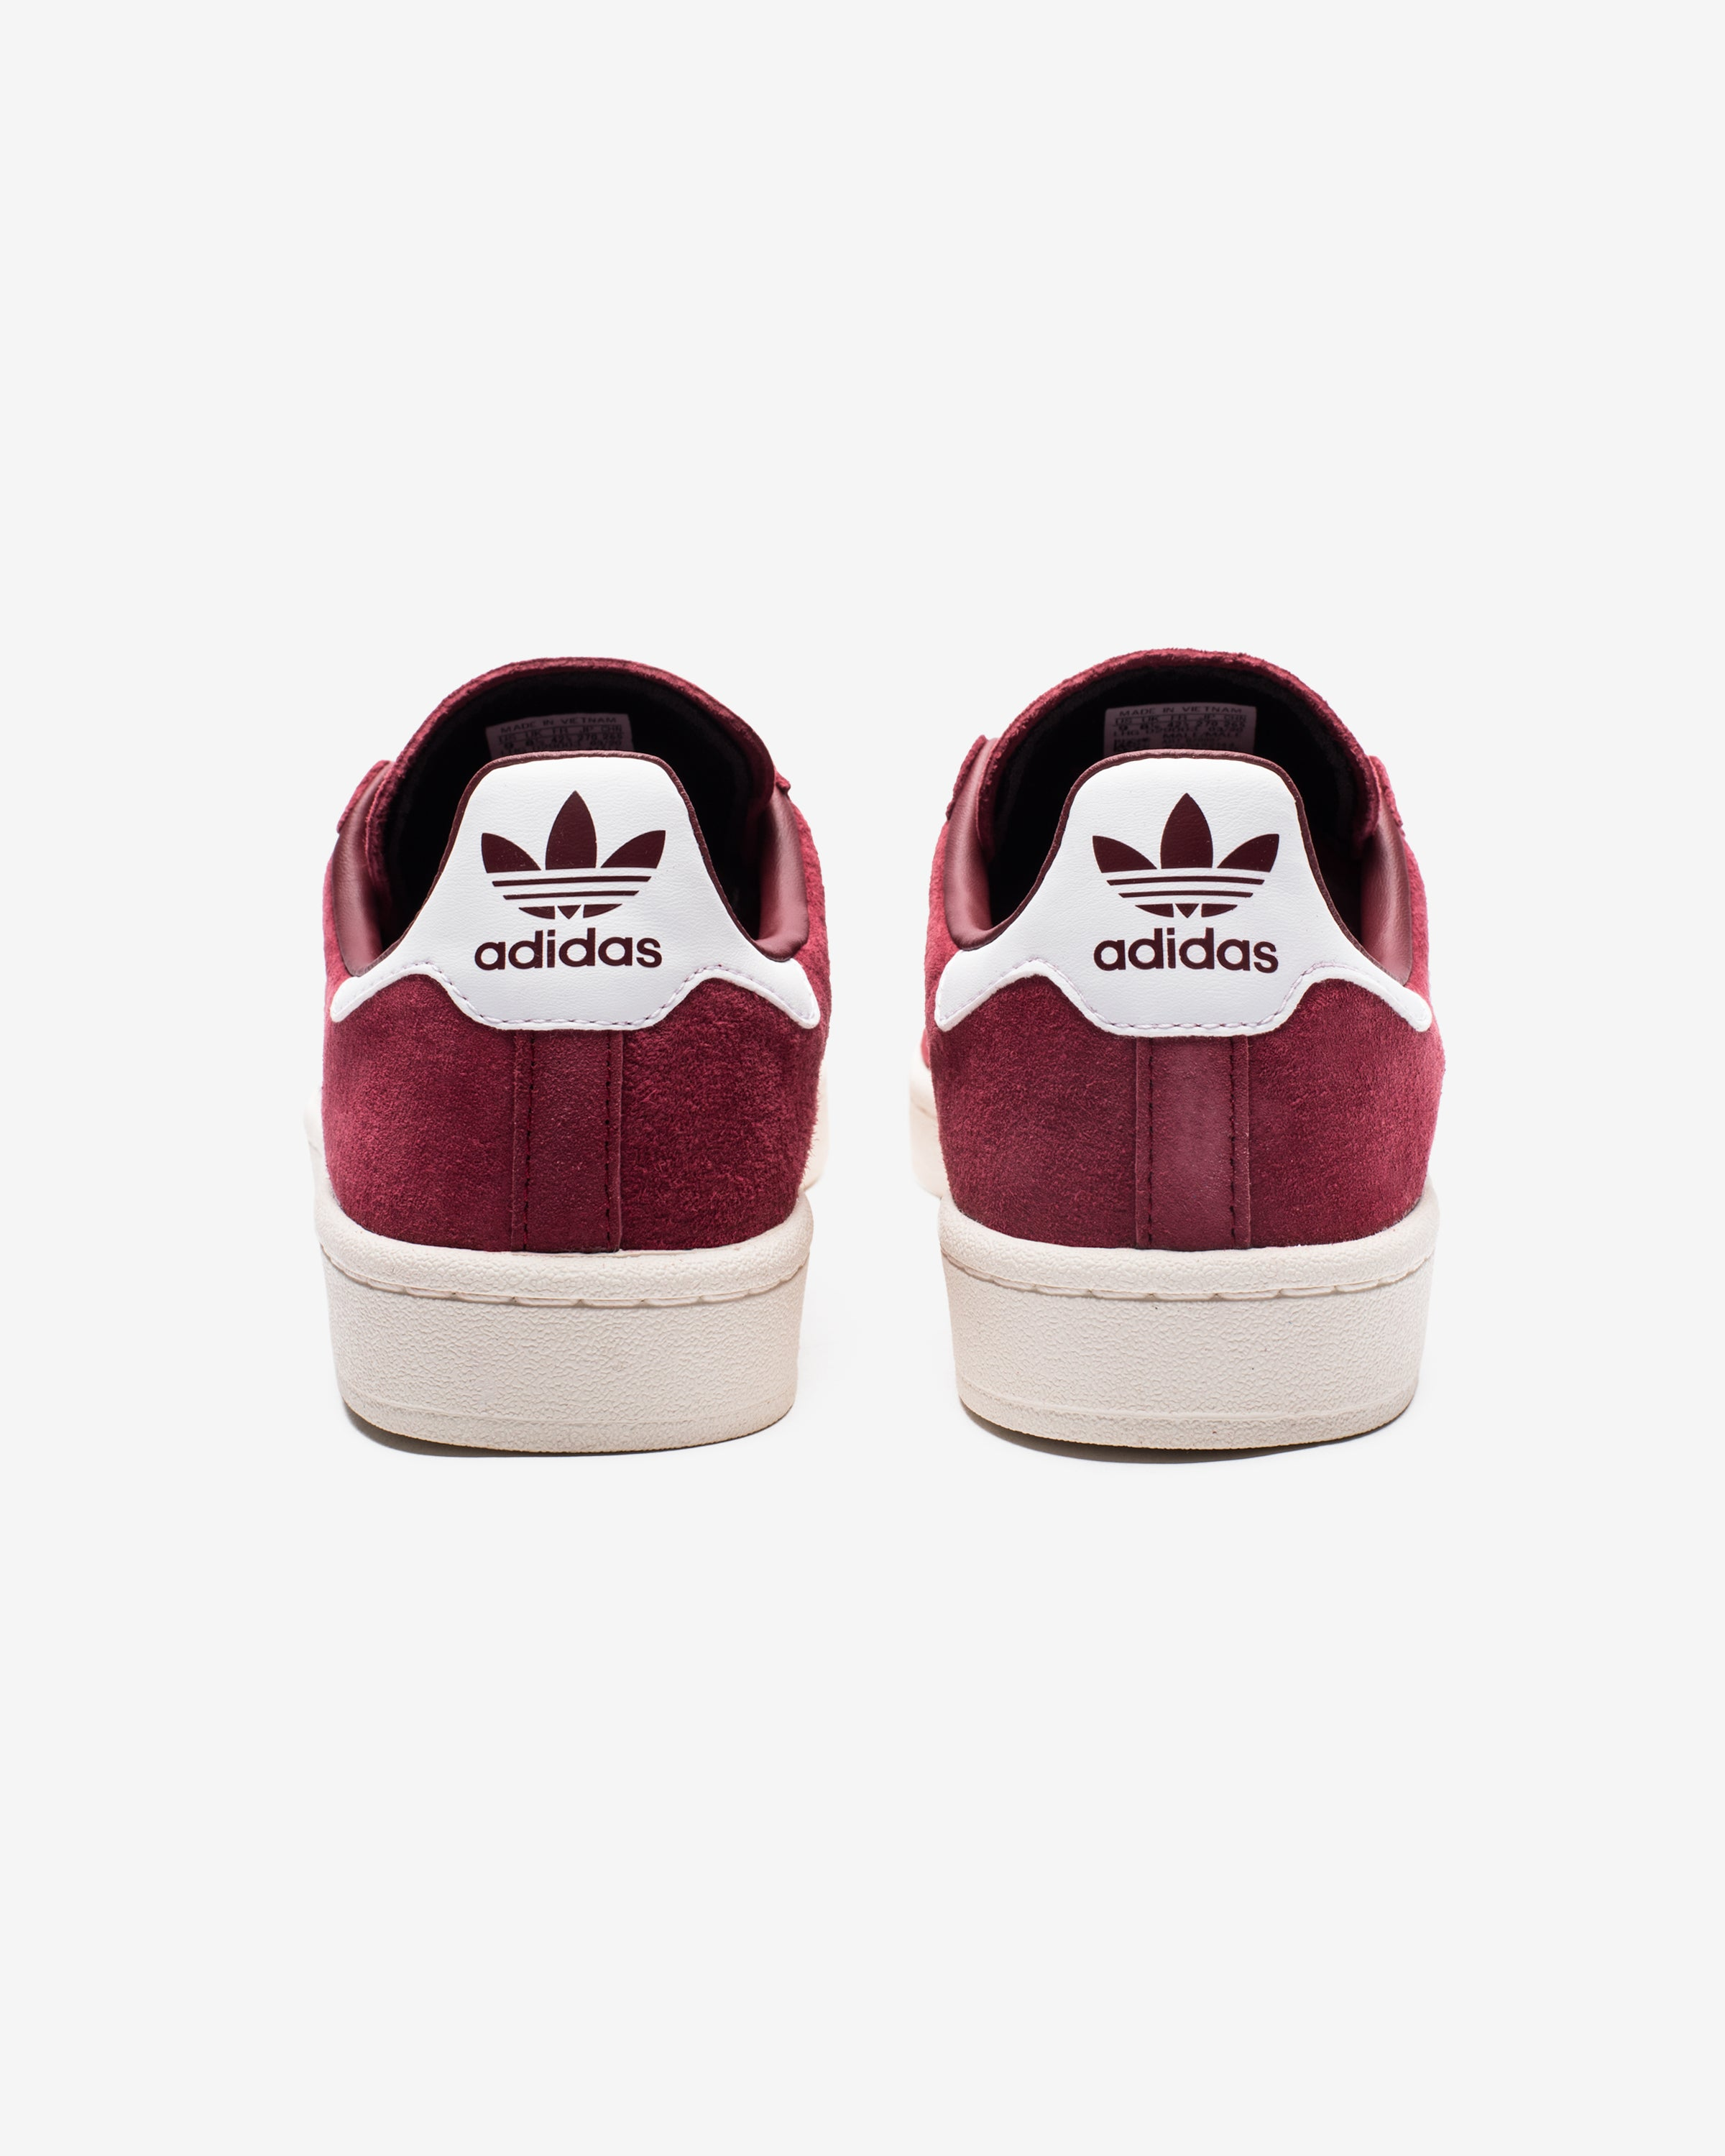 CAMPUS - COLLEGIATEBURGUNDY/ WHITE/ CHALKWHITE